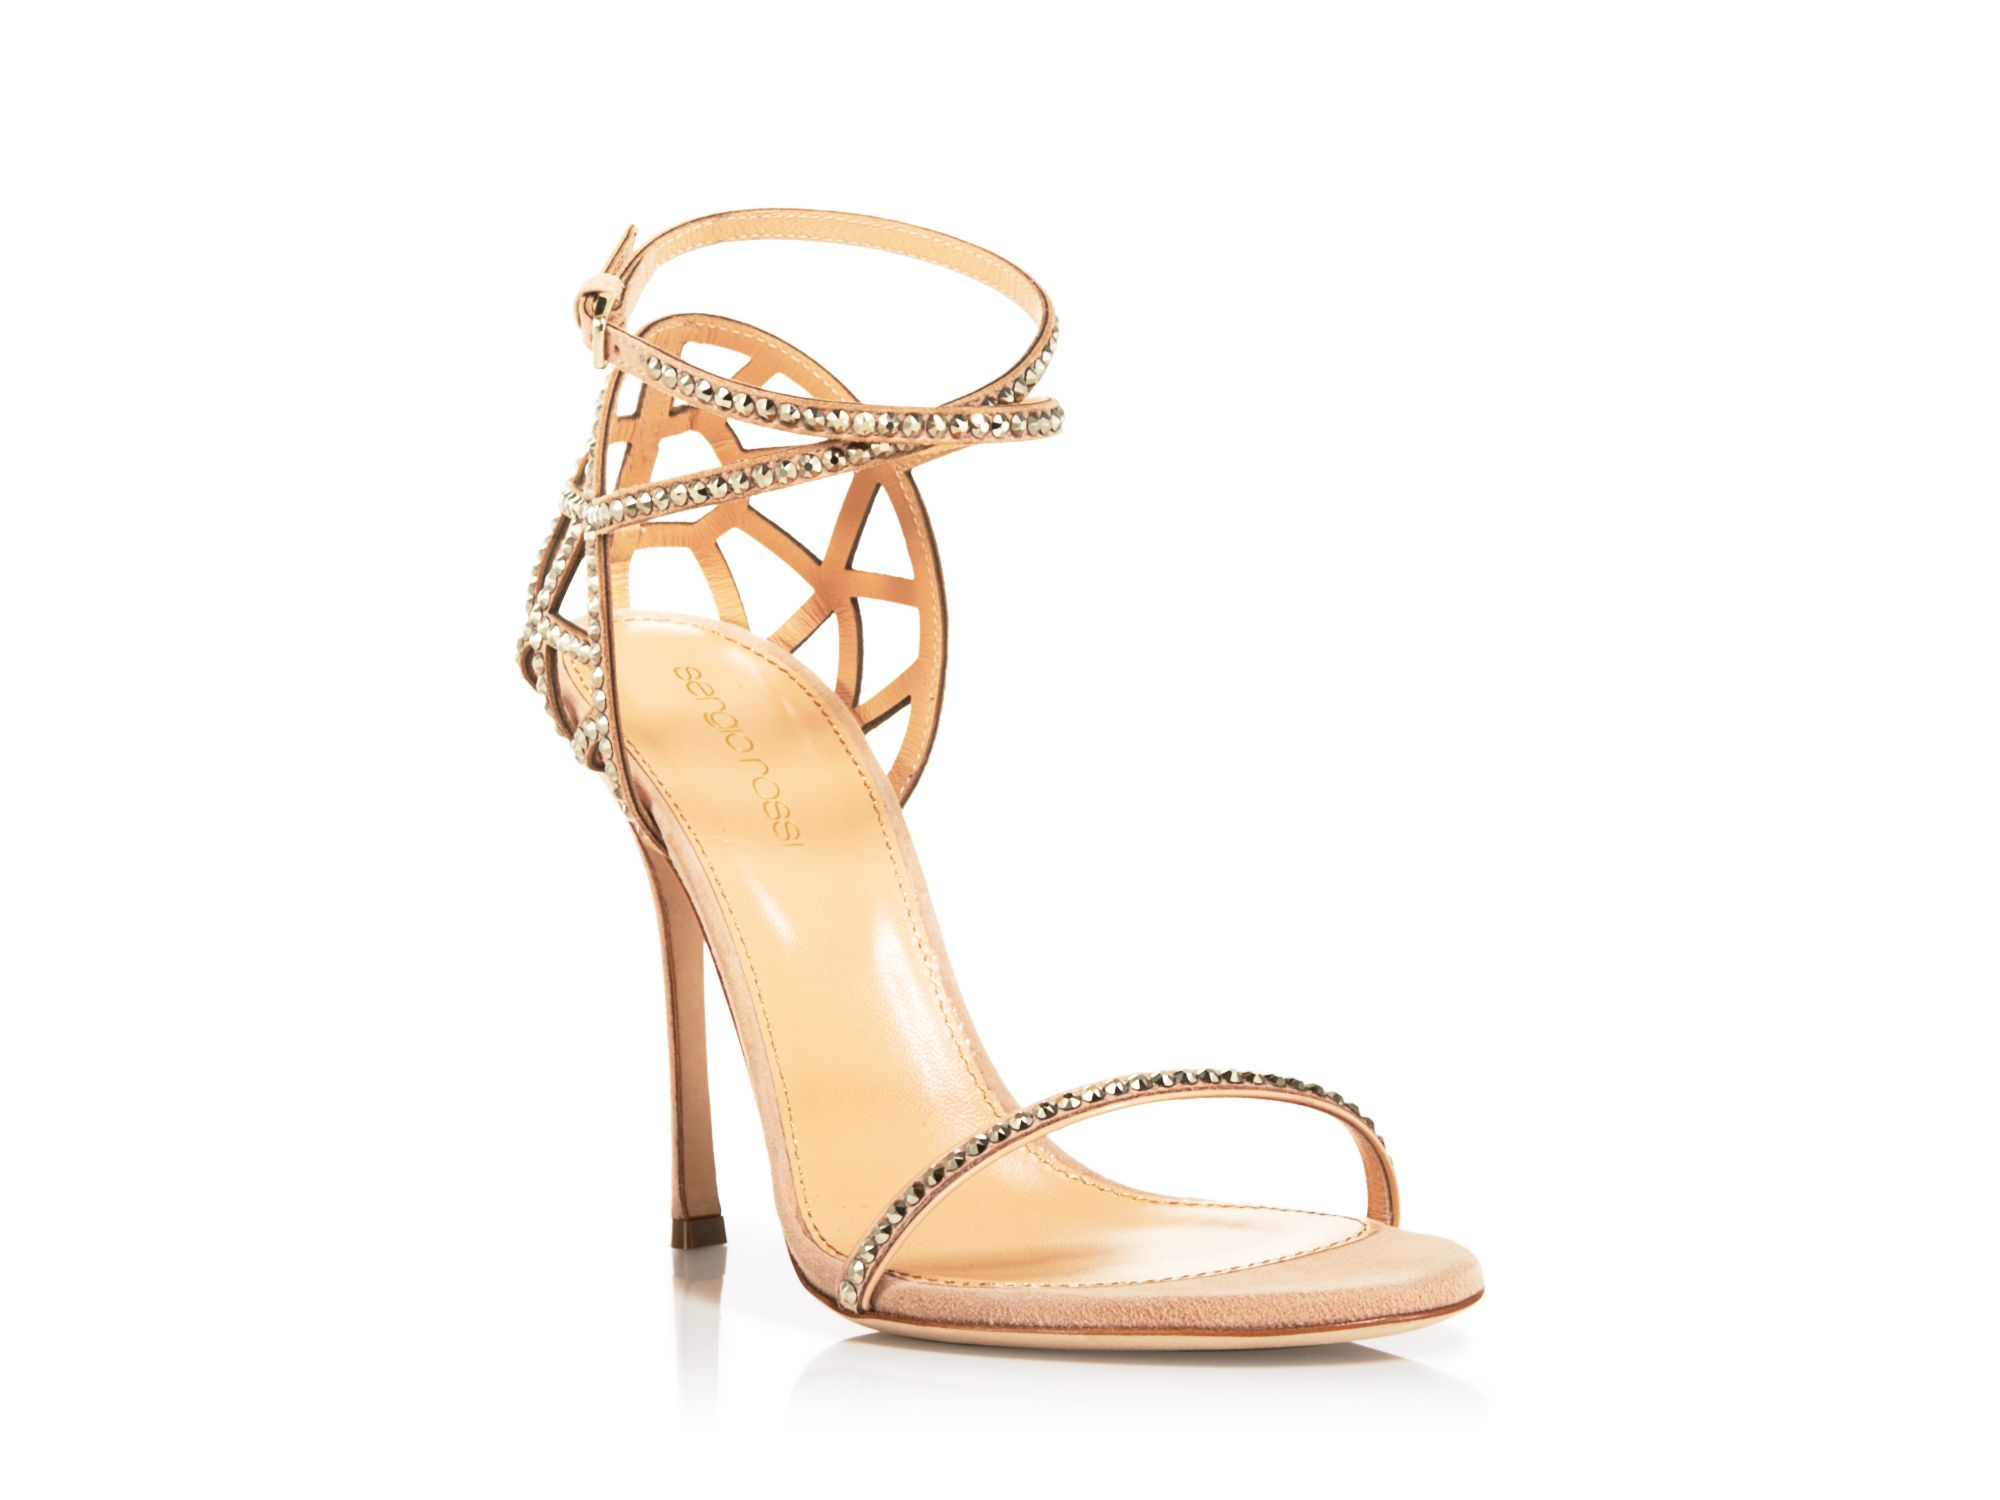 Sergio rossi Strappy Sandals - Puzzle High Heel in Natural | Lyst